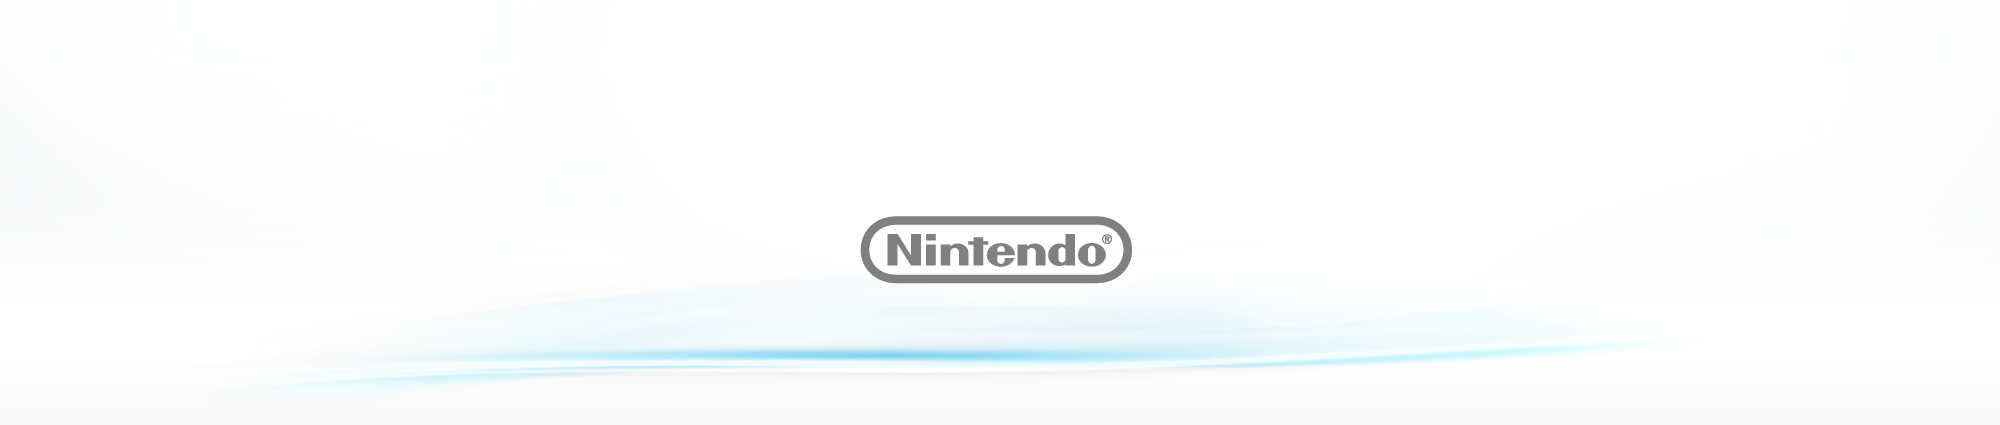 ich m chte meine e mail adresse ndern nintendo account hilfe nintendo. Black Bedroom Furniture Sets. Home Design Ideas